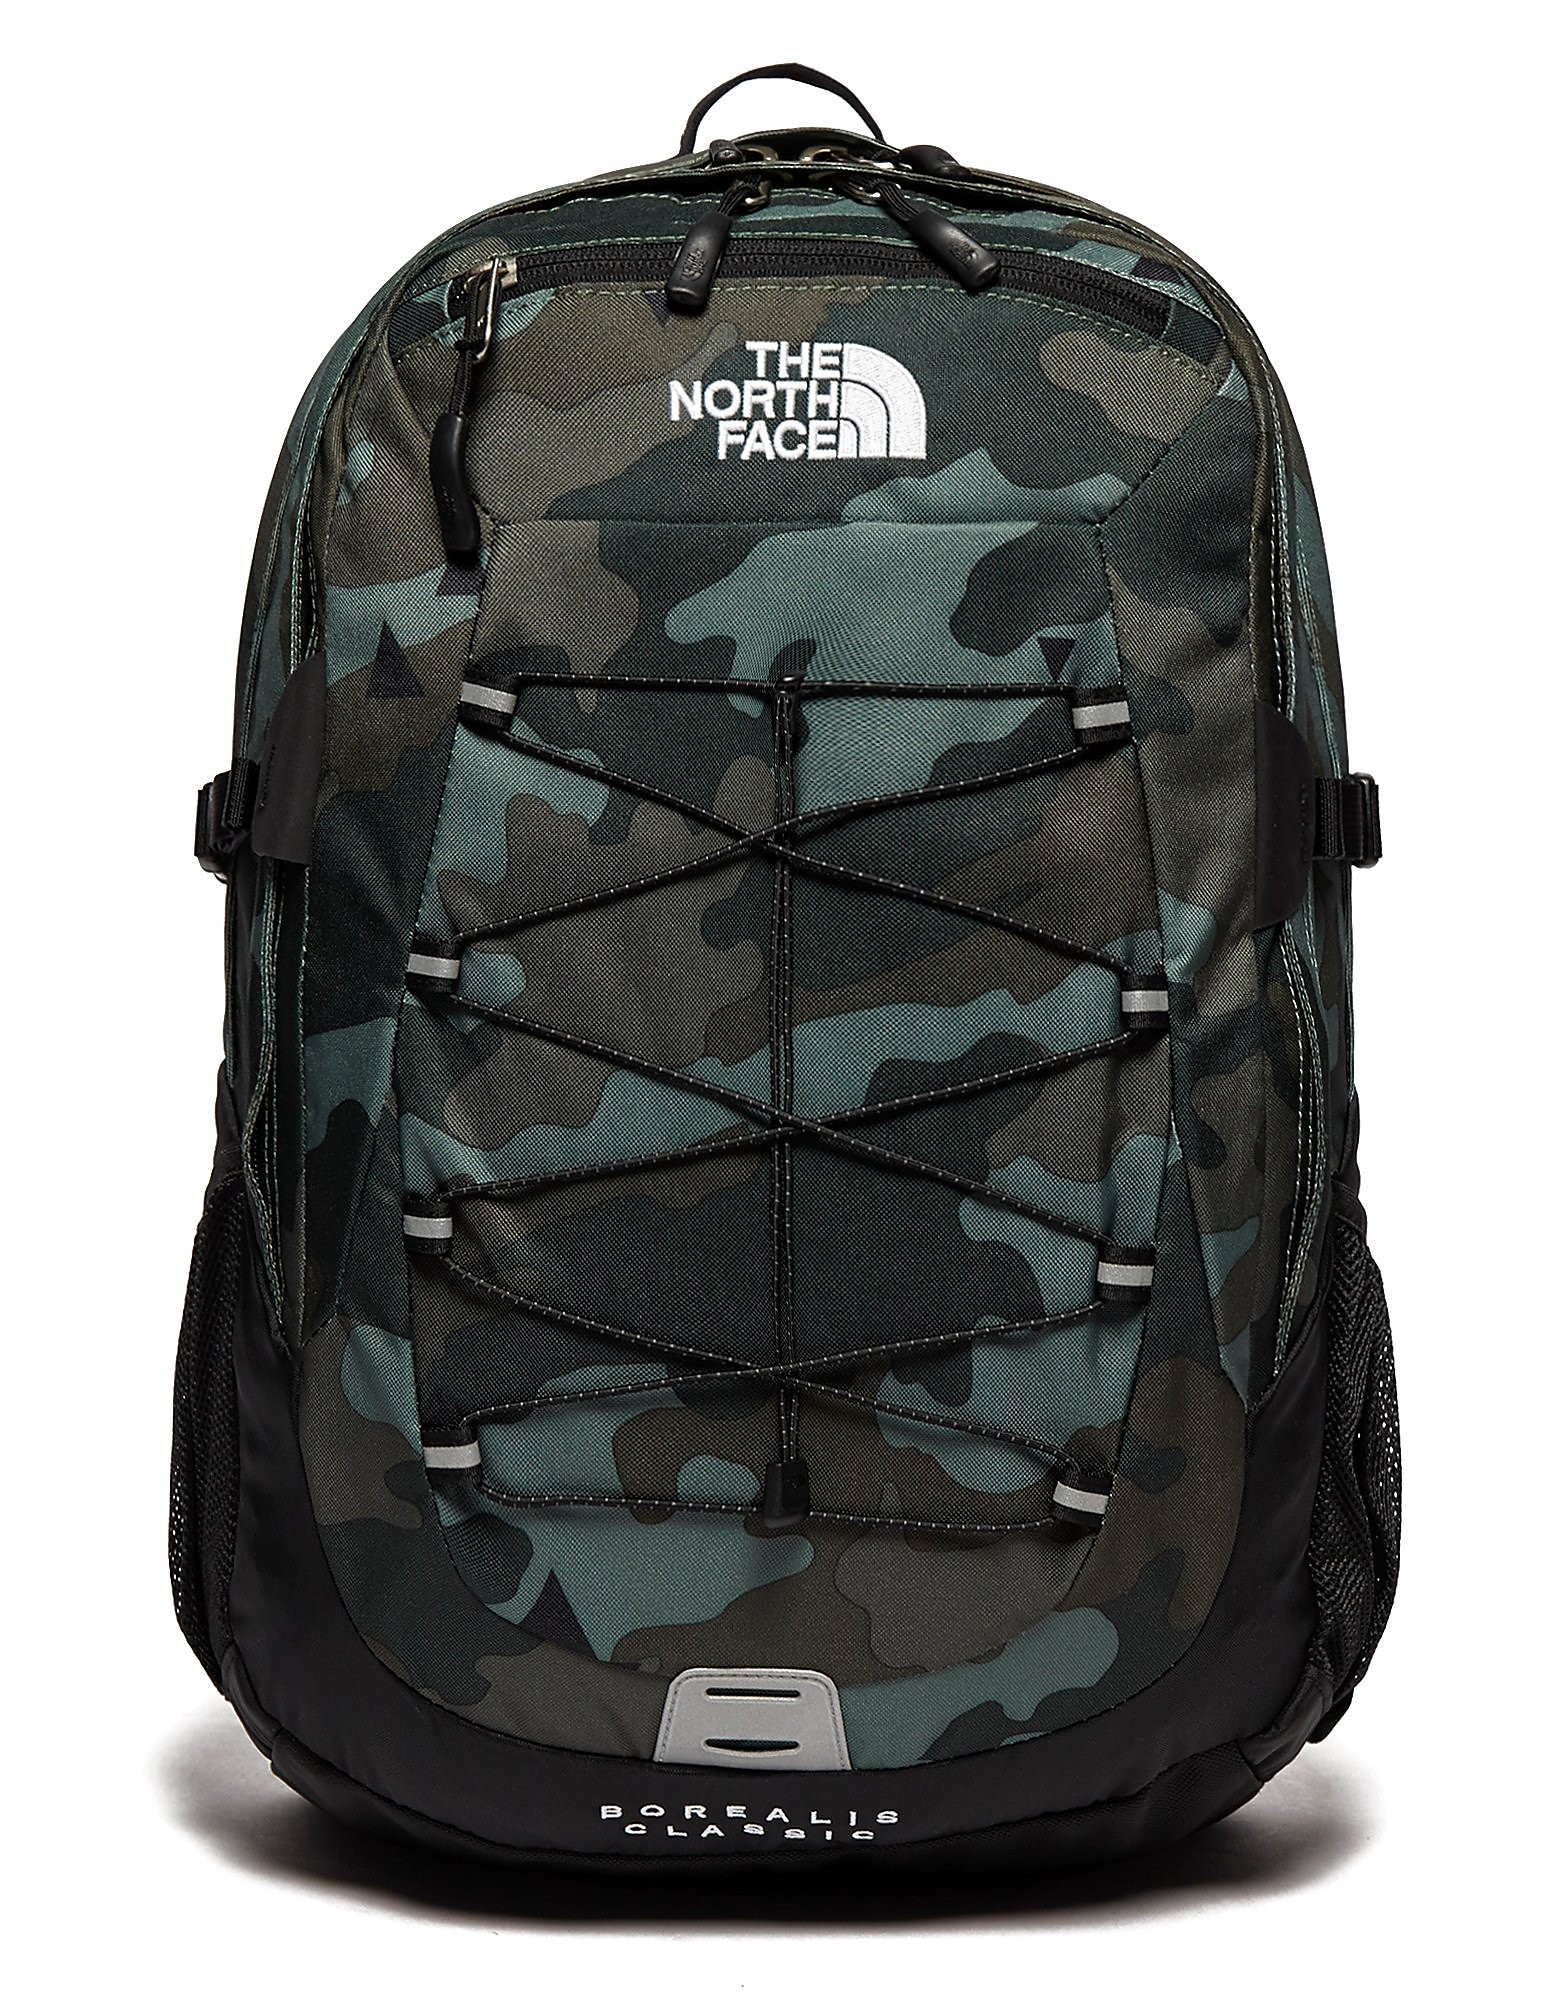 The North Face Sac à dos classique Borealis